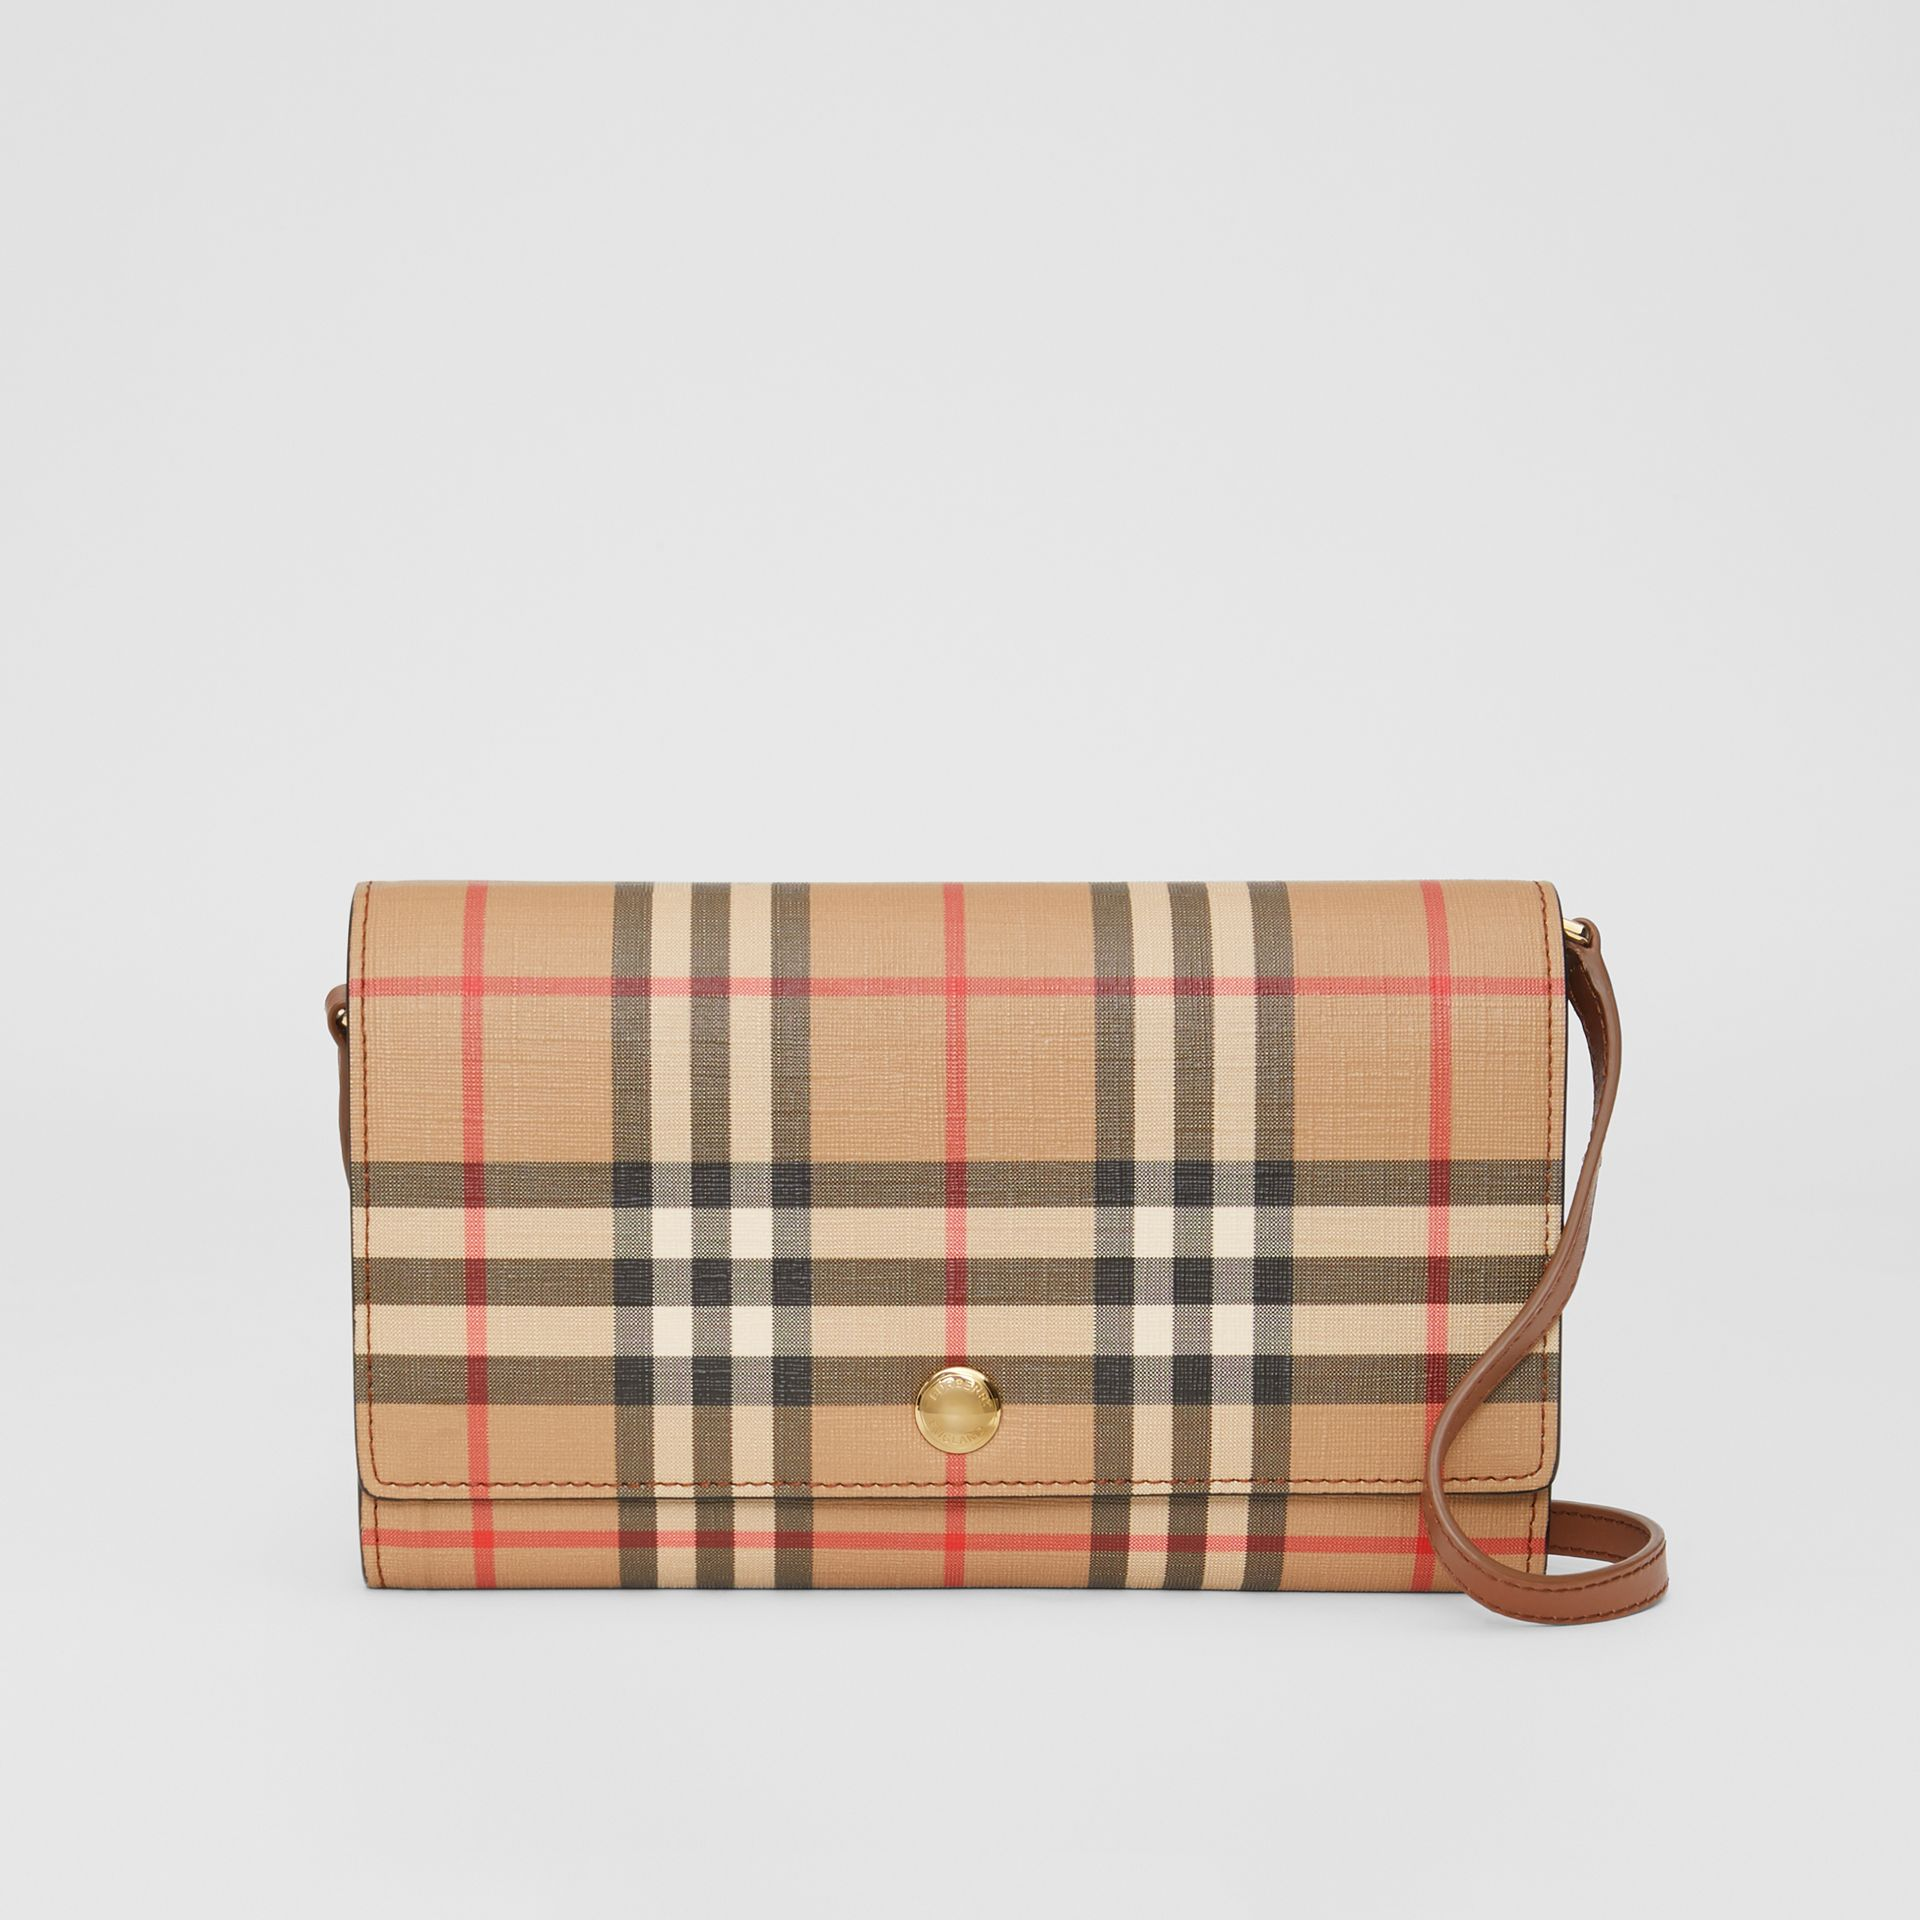 Portefeuille Vintage check avec sangle amovible (Brun Malt) - Femme | Burberry Canada - photo de la galerie 0